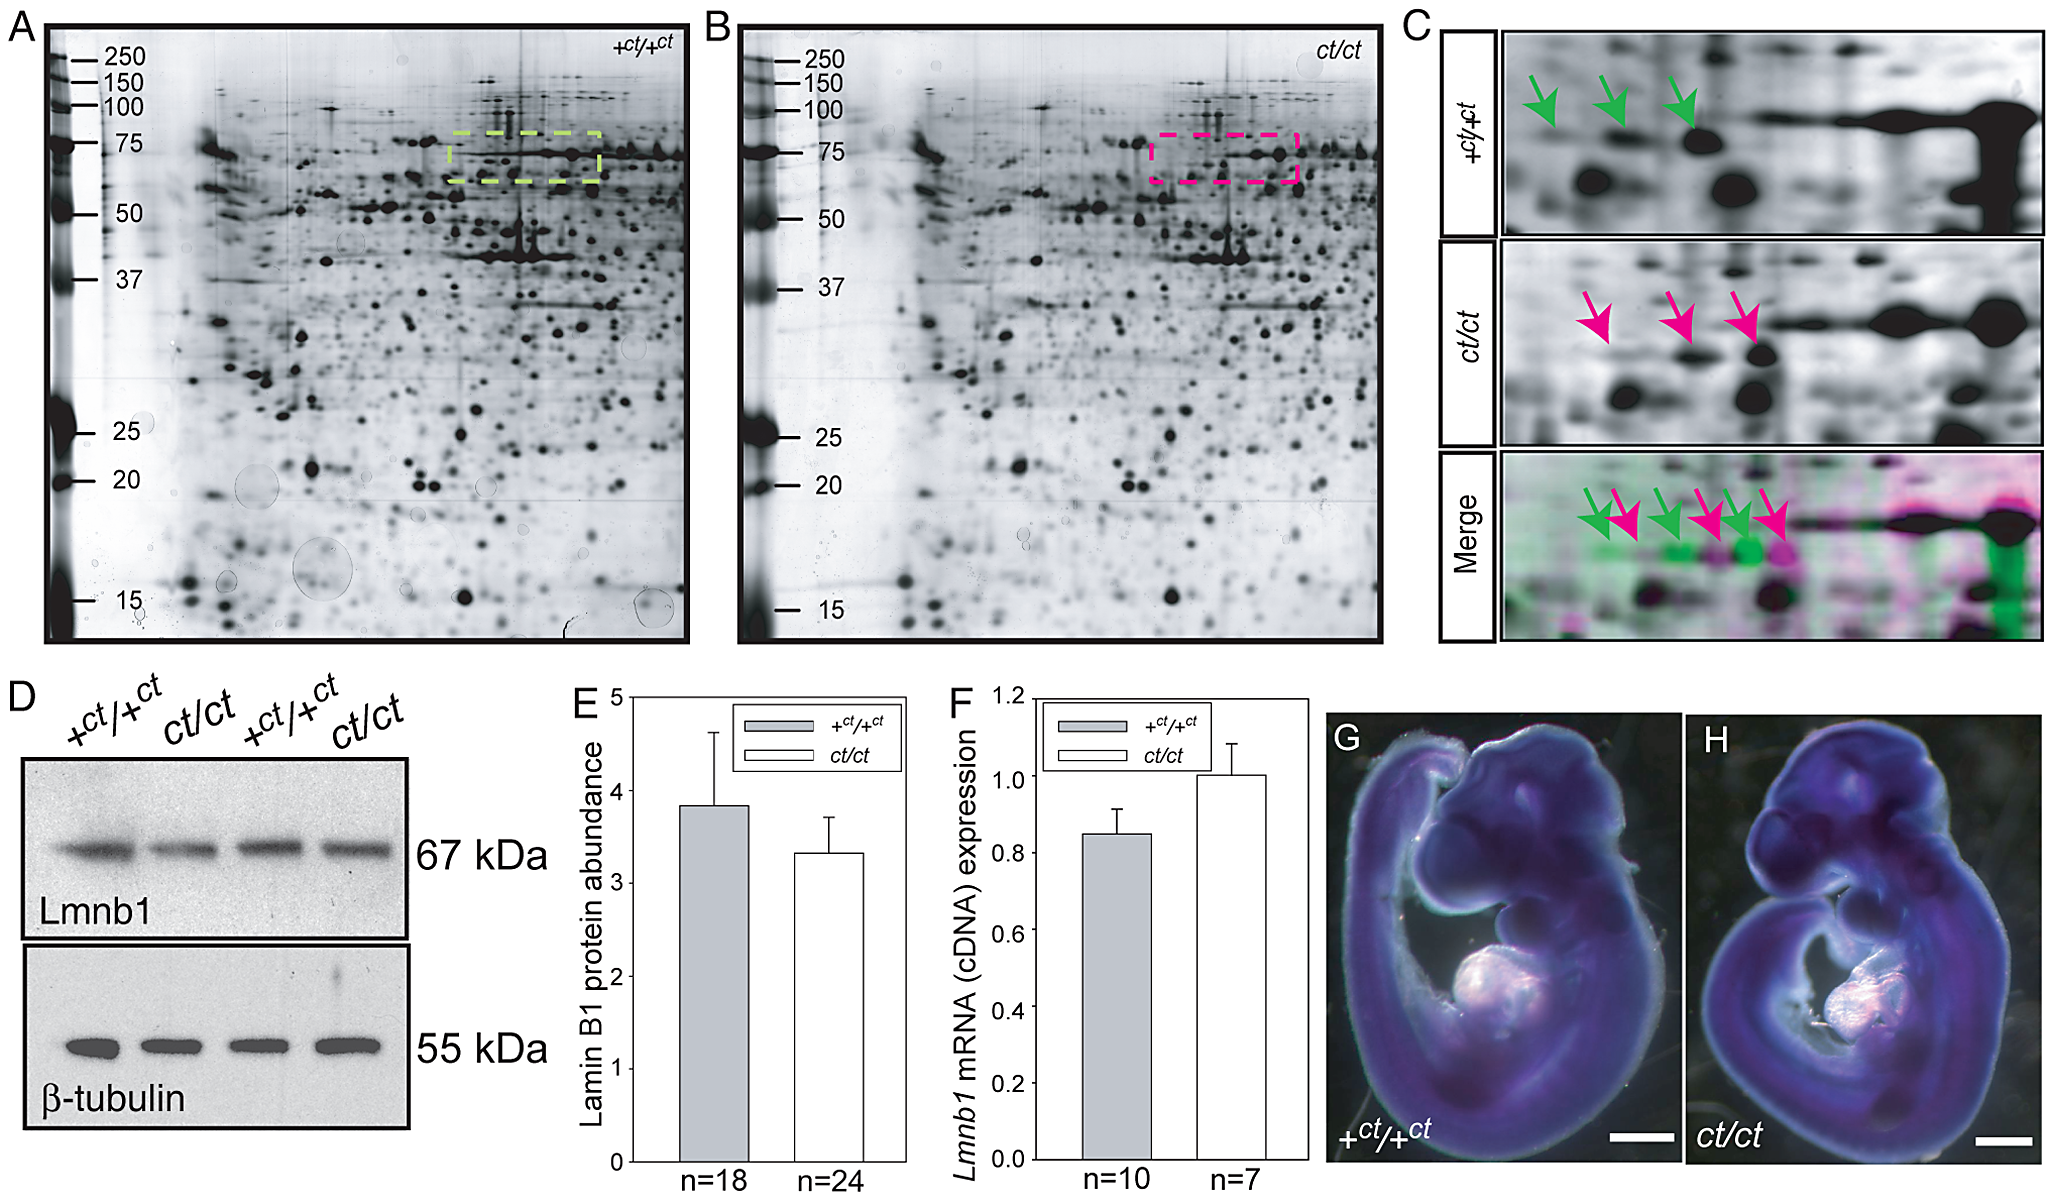 Lamin B1 shows differential protein migration by two-dimensional gel electrophoresis in <i>curly tail</i> and wild-type embryo samples.